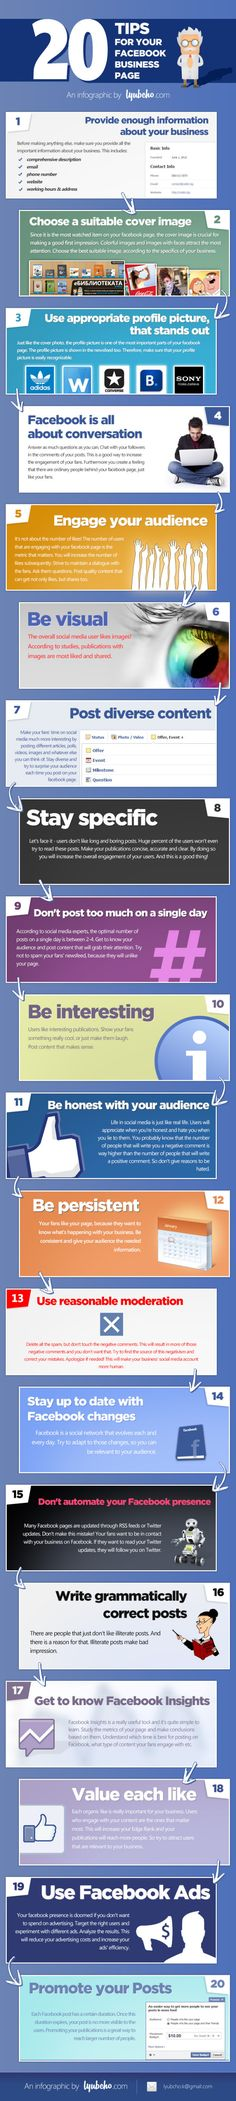 20 tips for your #Facebook business page - #infographic